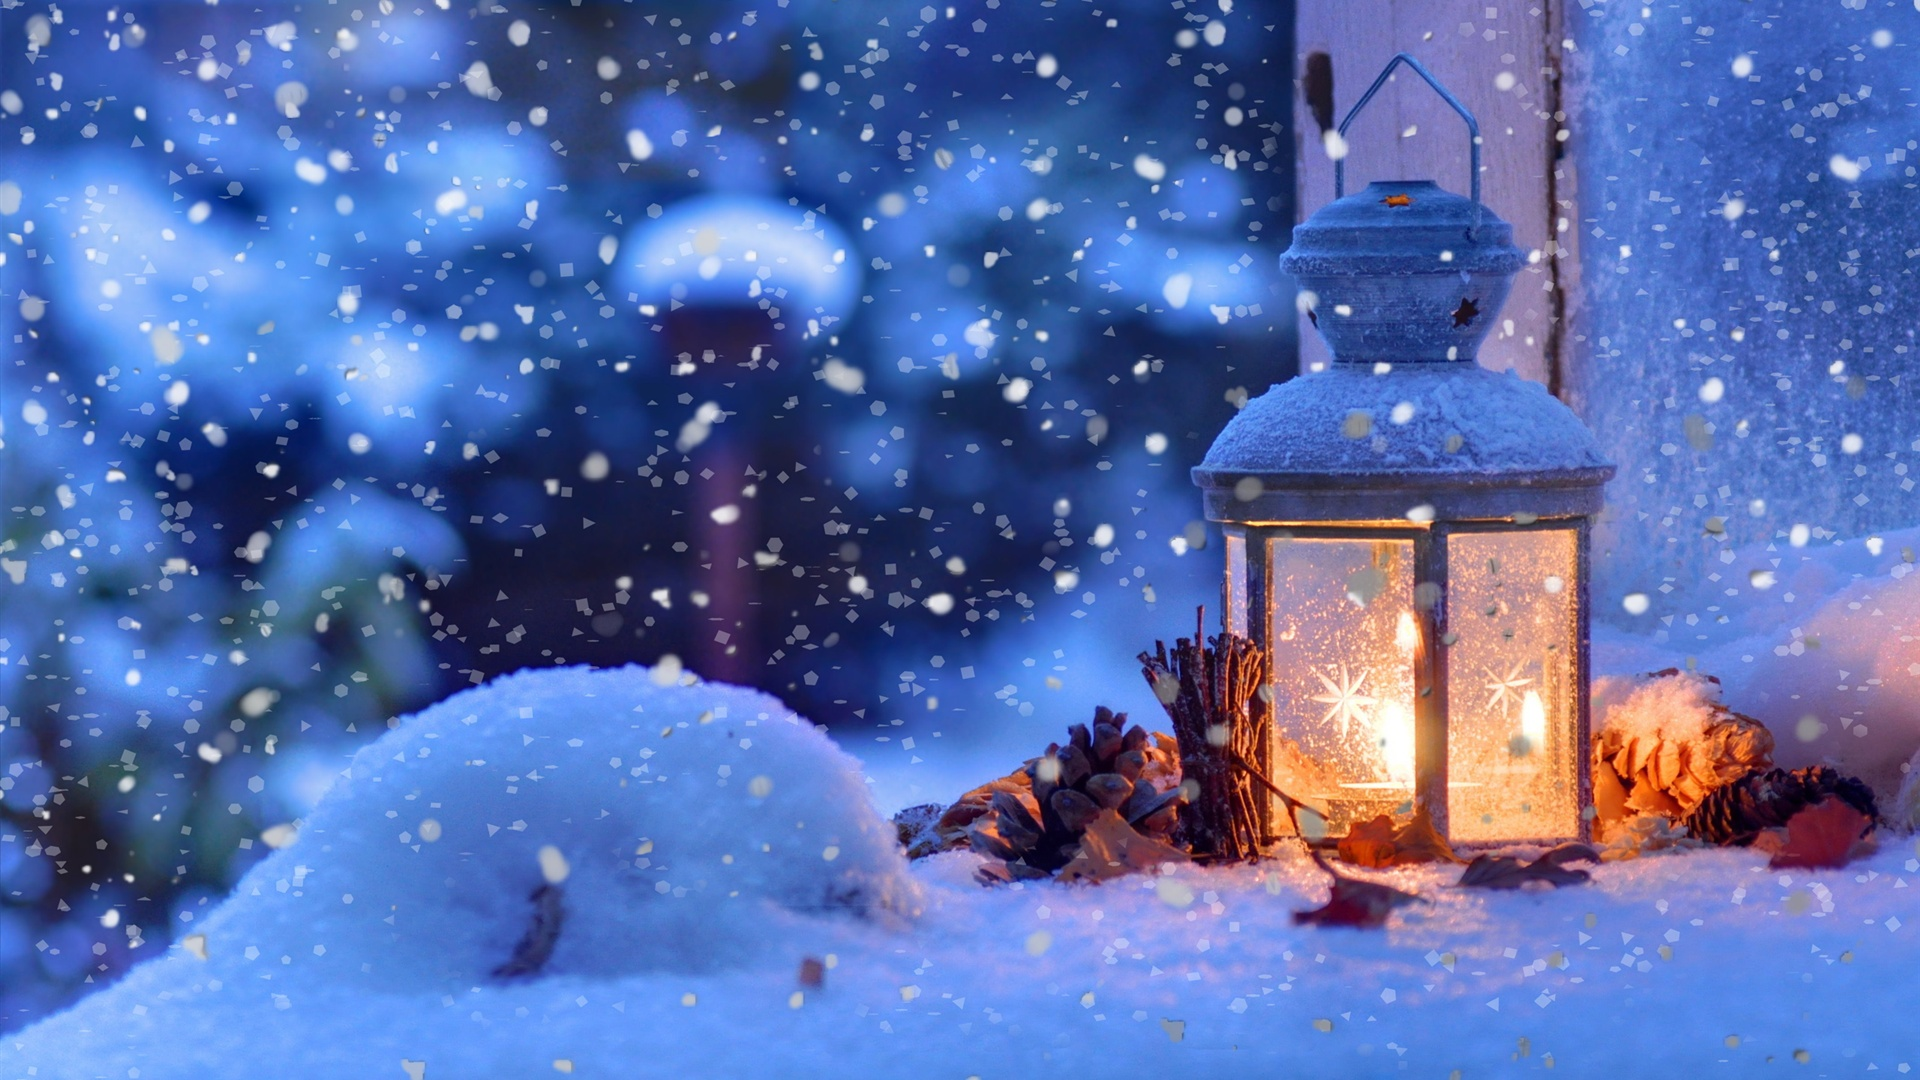 Wallpaper Christmas Snow Winter Light Snowflakes 2560x1600 HD Picture Image